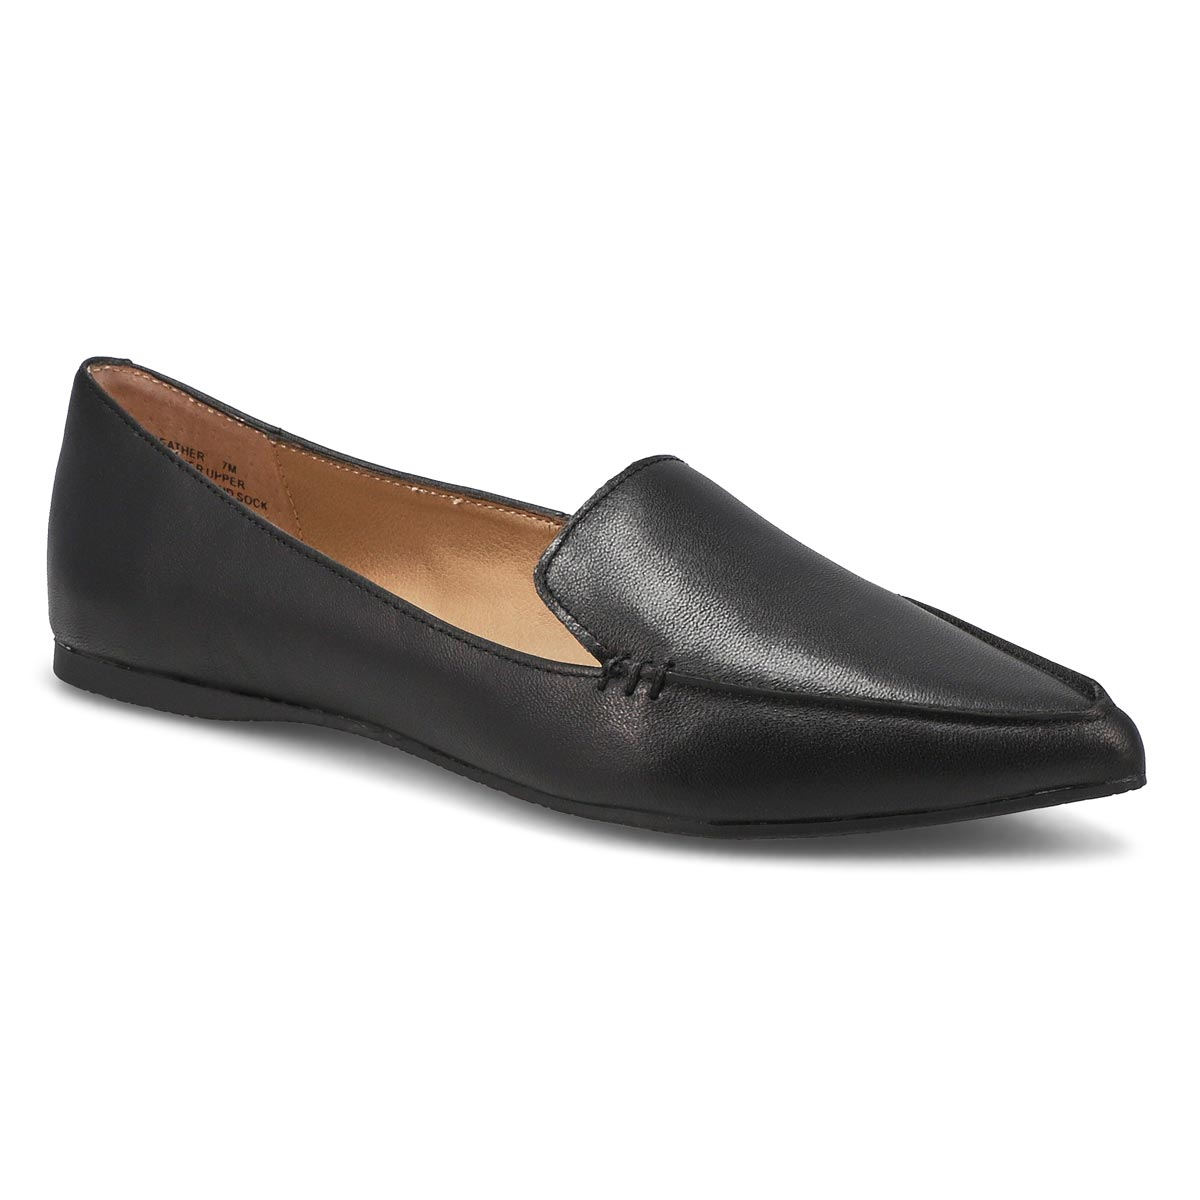 6213d6820d8 Women's FEATHER black leather casual flats